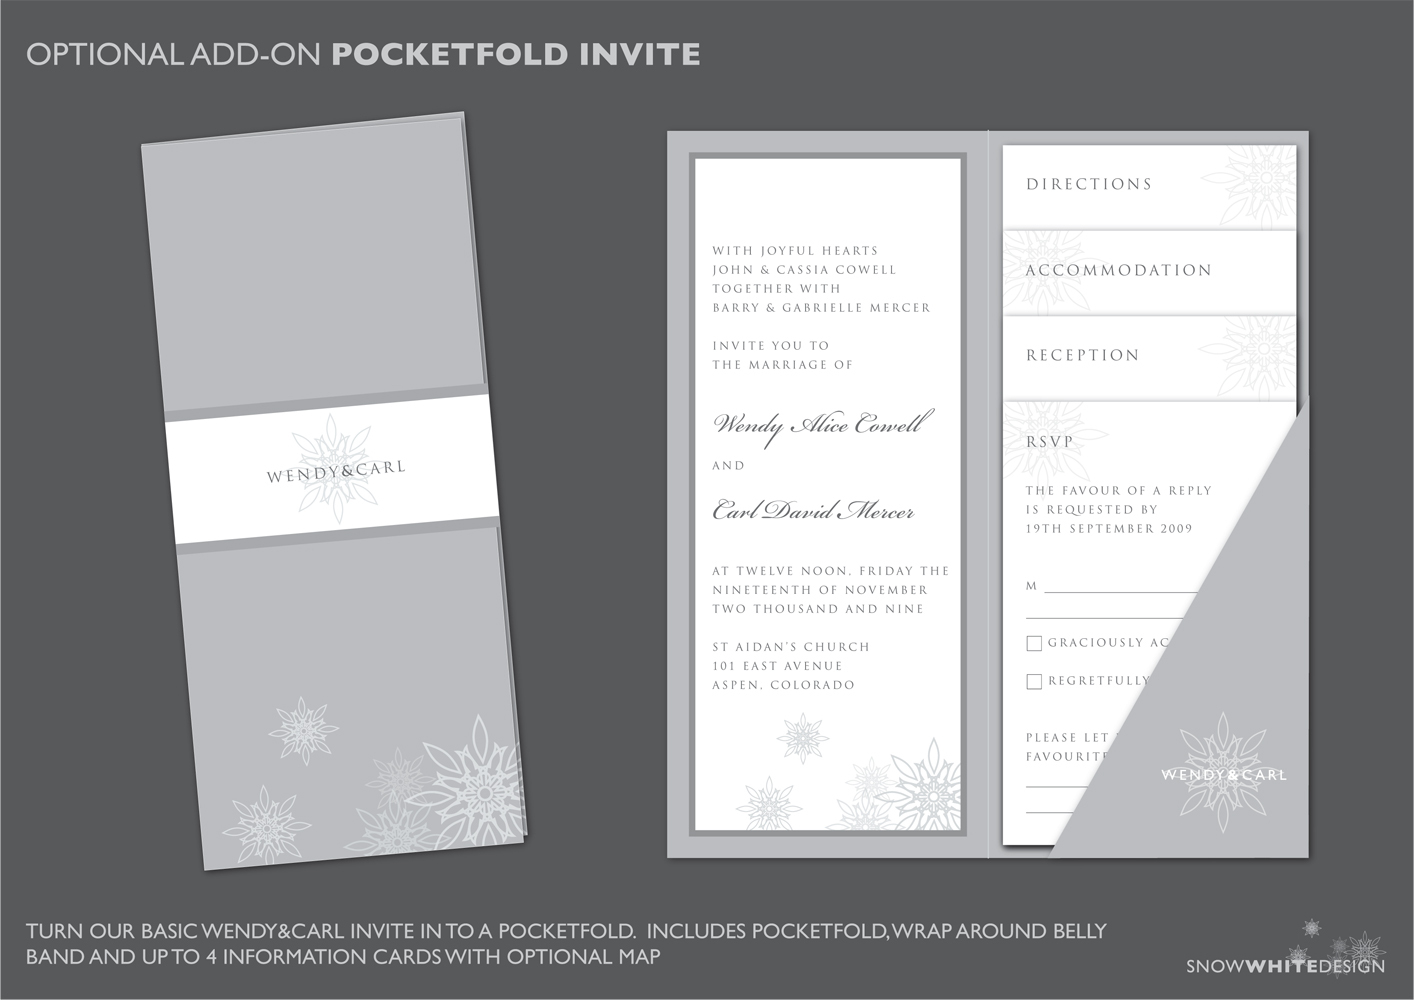 DIY, Stationery, white, invitation, Winter, Invitations, Monogram, Grey, Rsvp, Pocketfold, Design, Pocket, Fold, Invite, Snow, Snowflake, Response, Snow white design